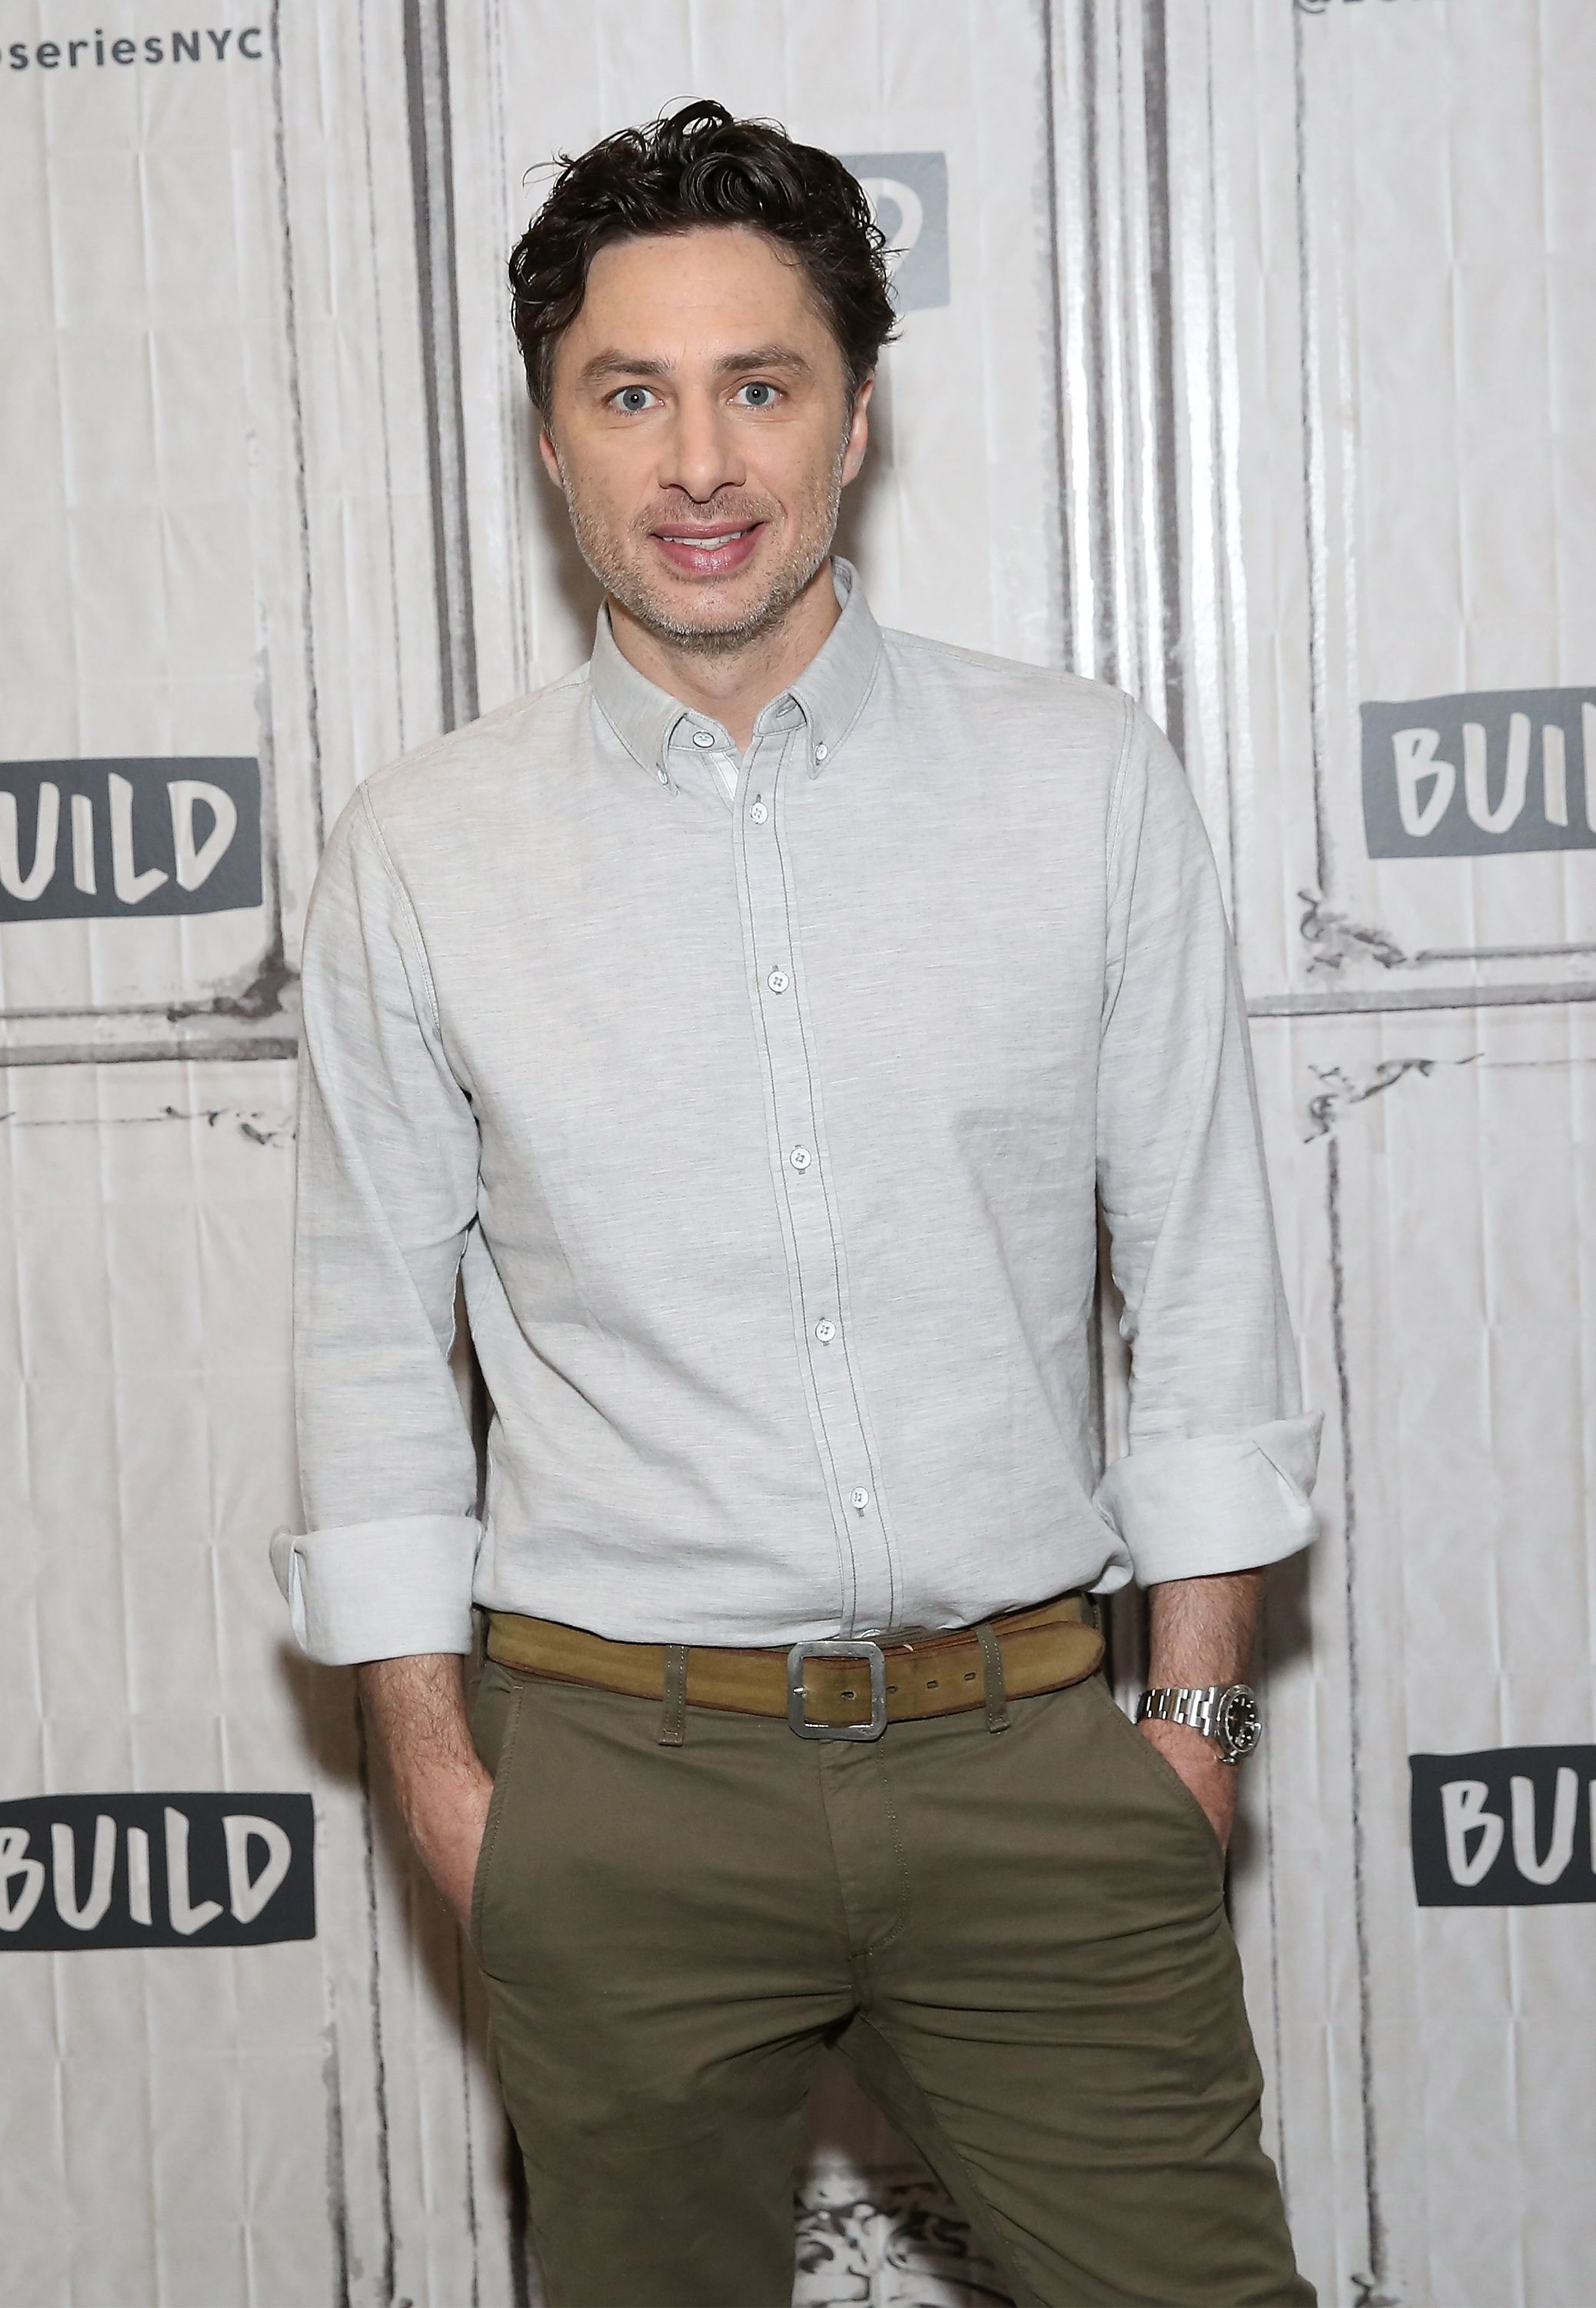 Zach Braff visits Build Studio on April 4, 2018, in New York City | Photo: Monica Schipper/Getty Images